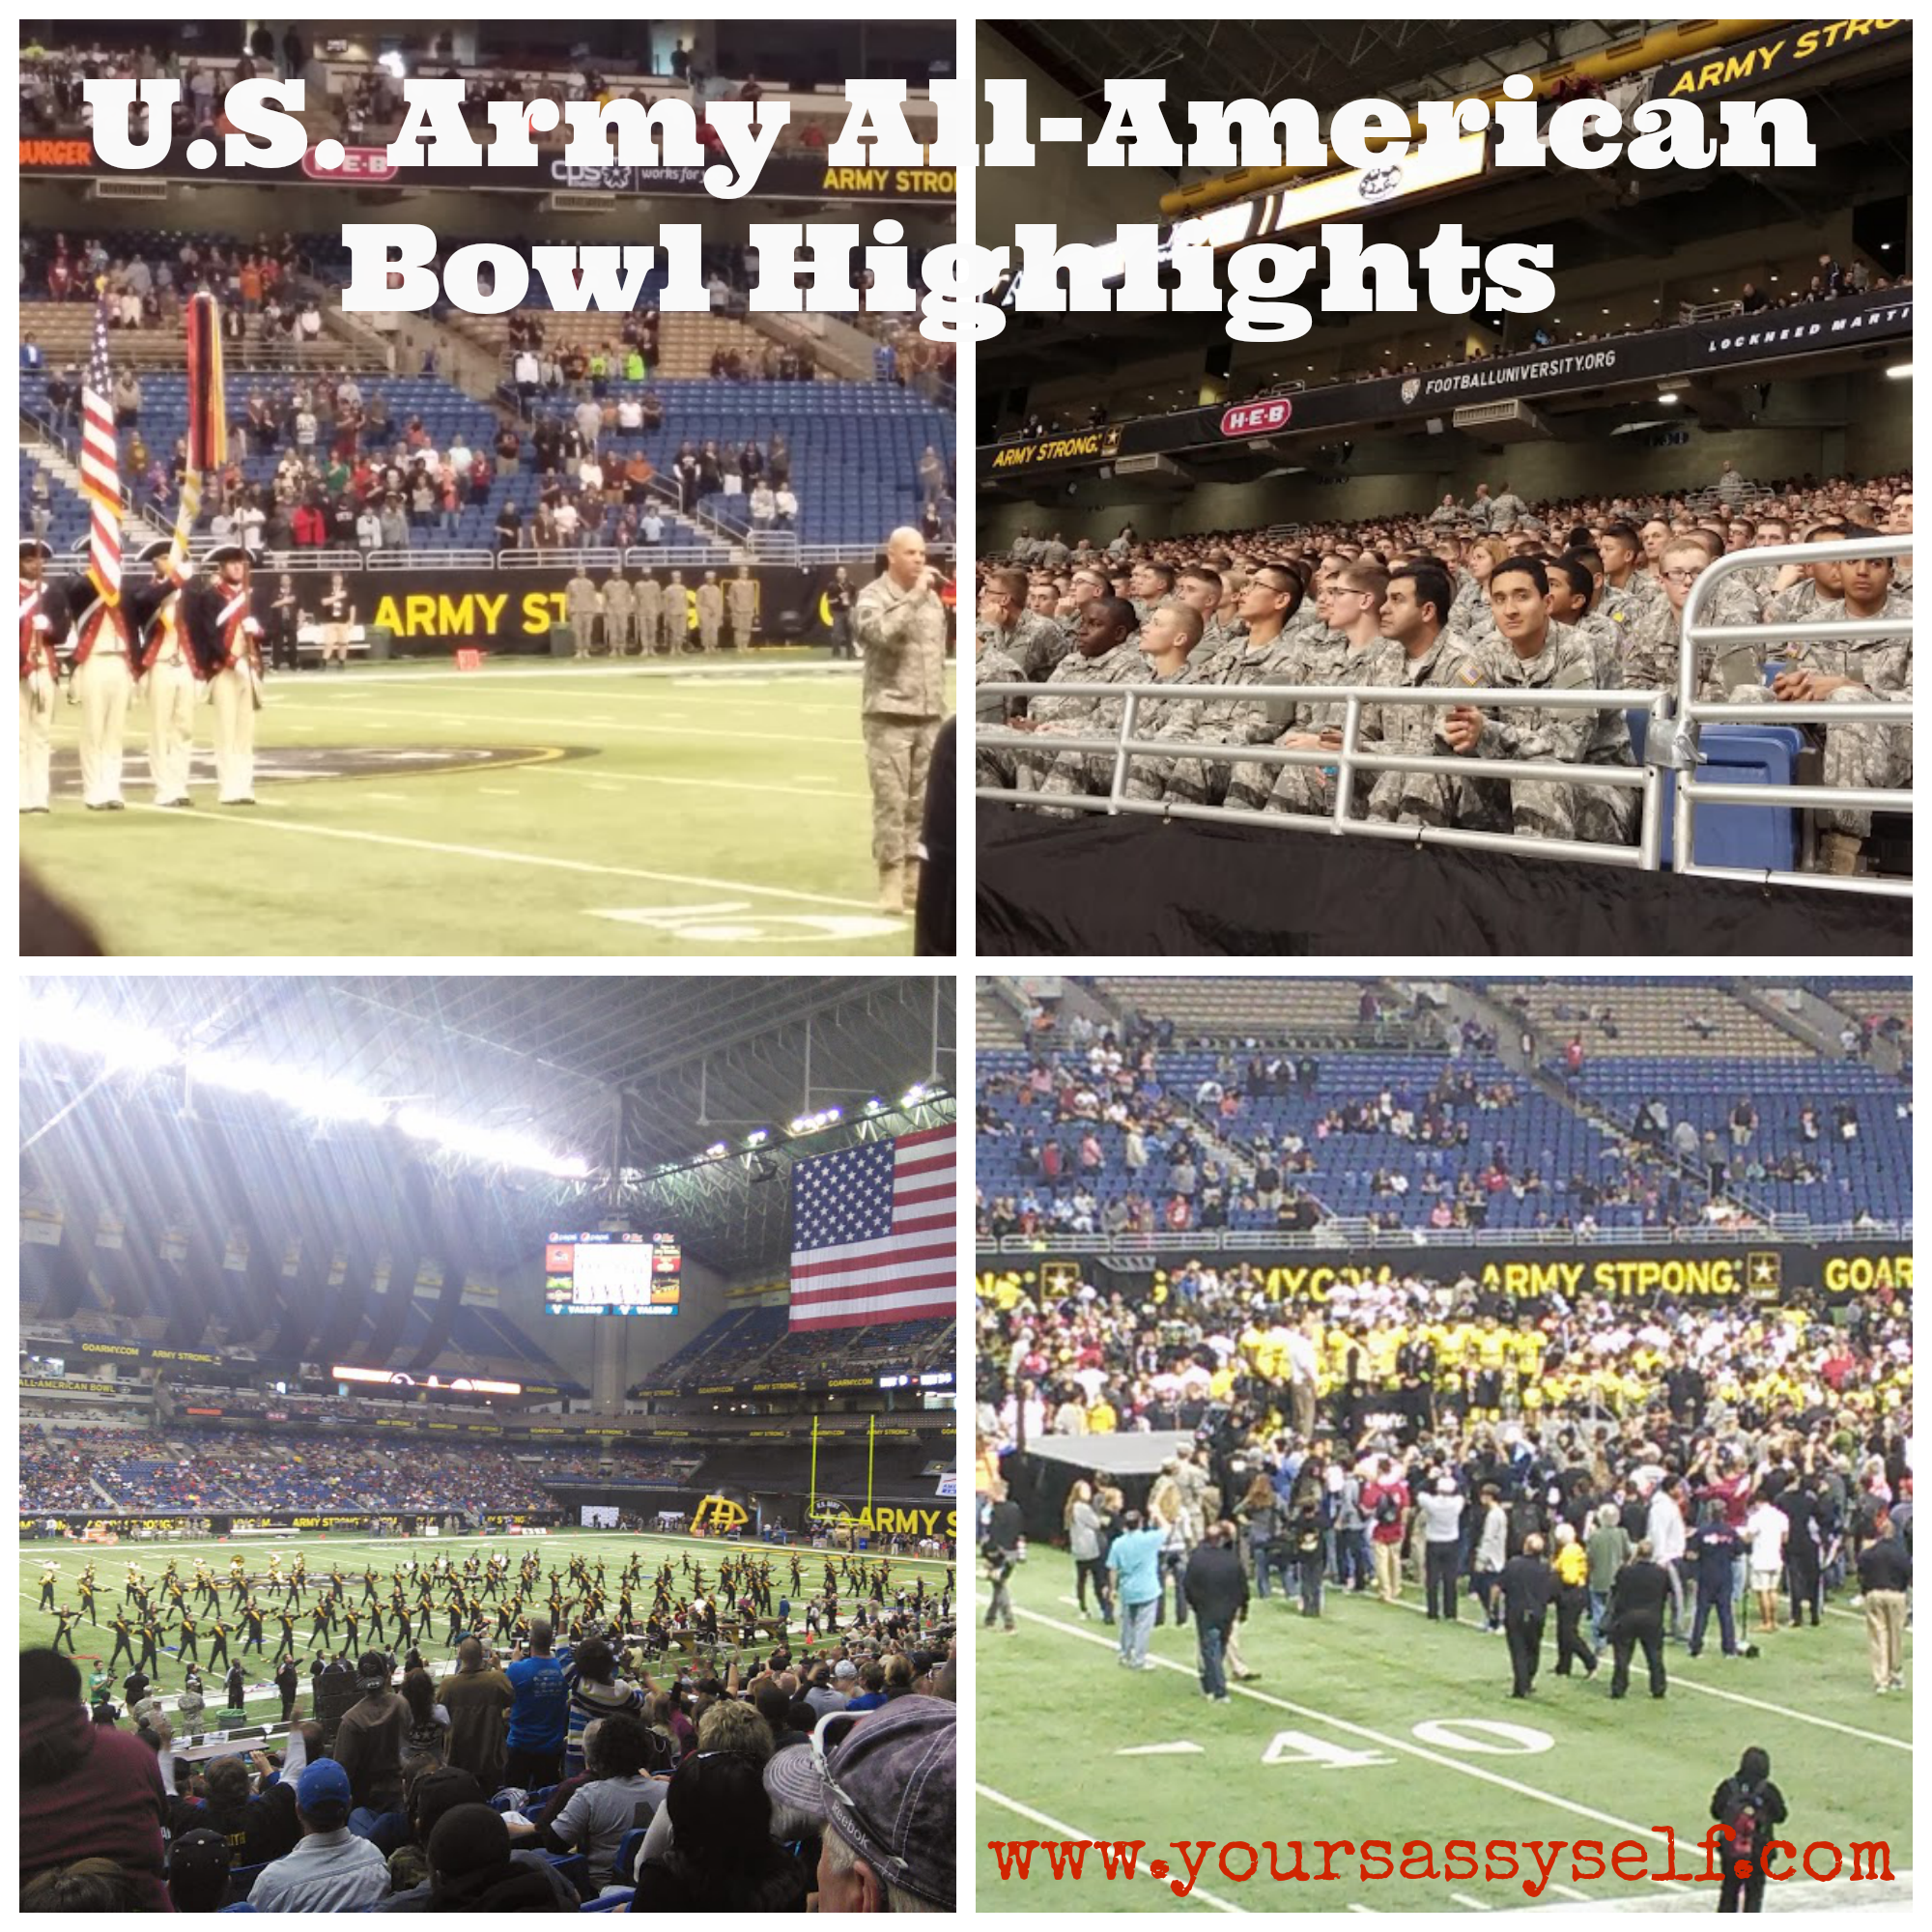 What I Learned at the U.S. Army All-American Bowl